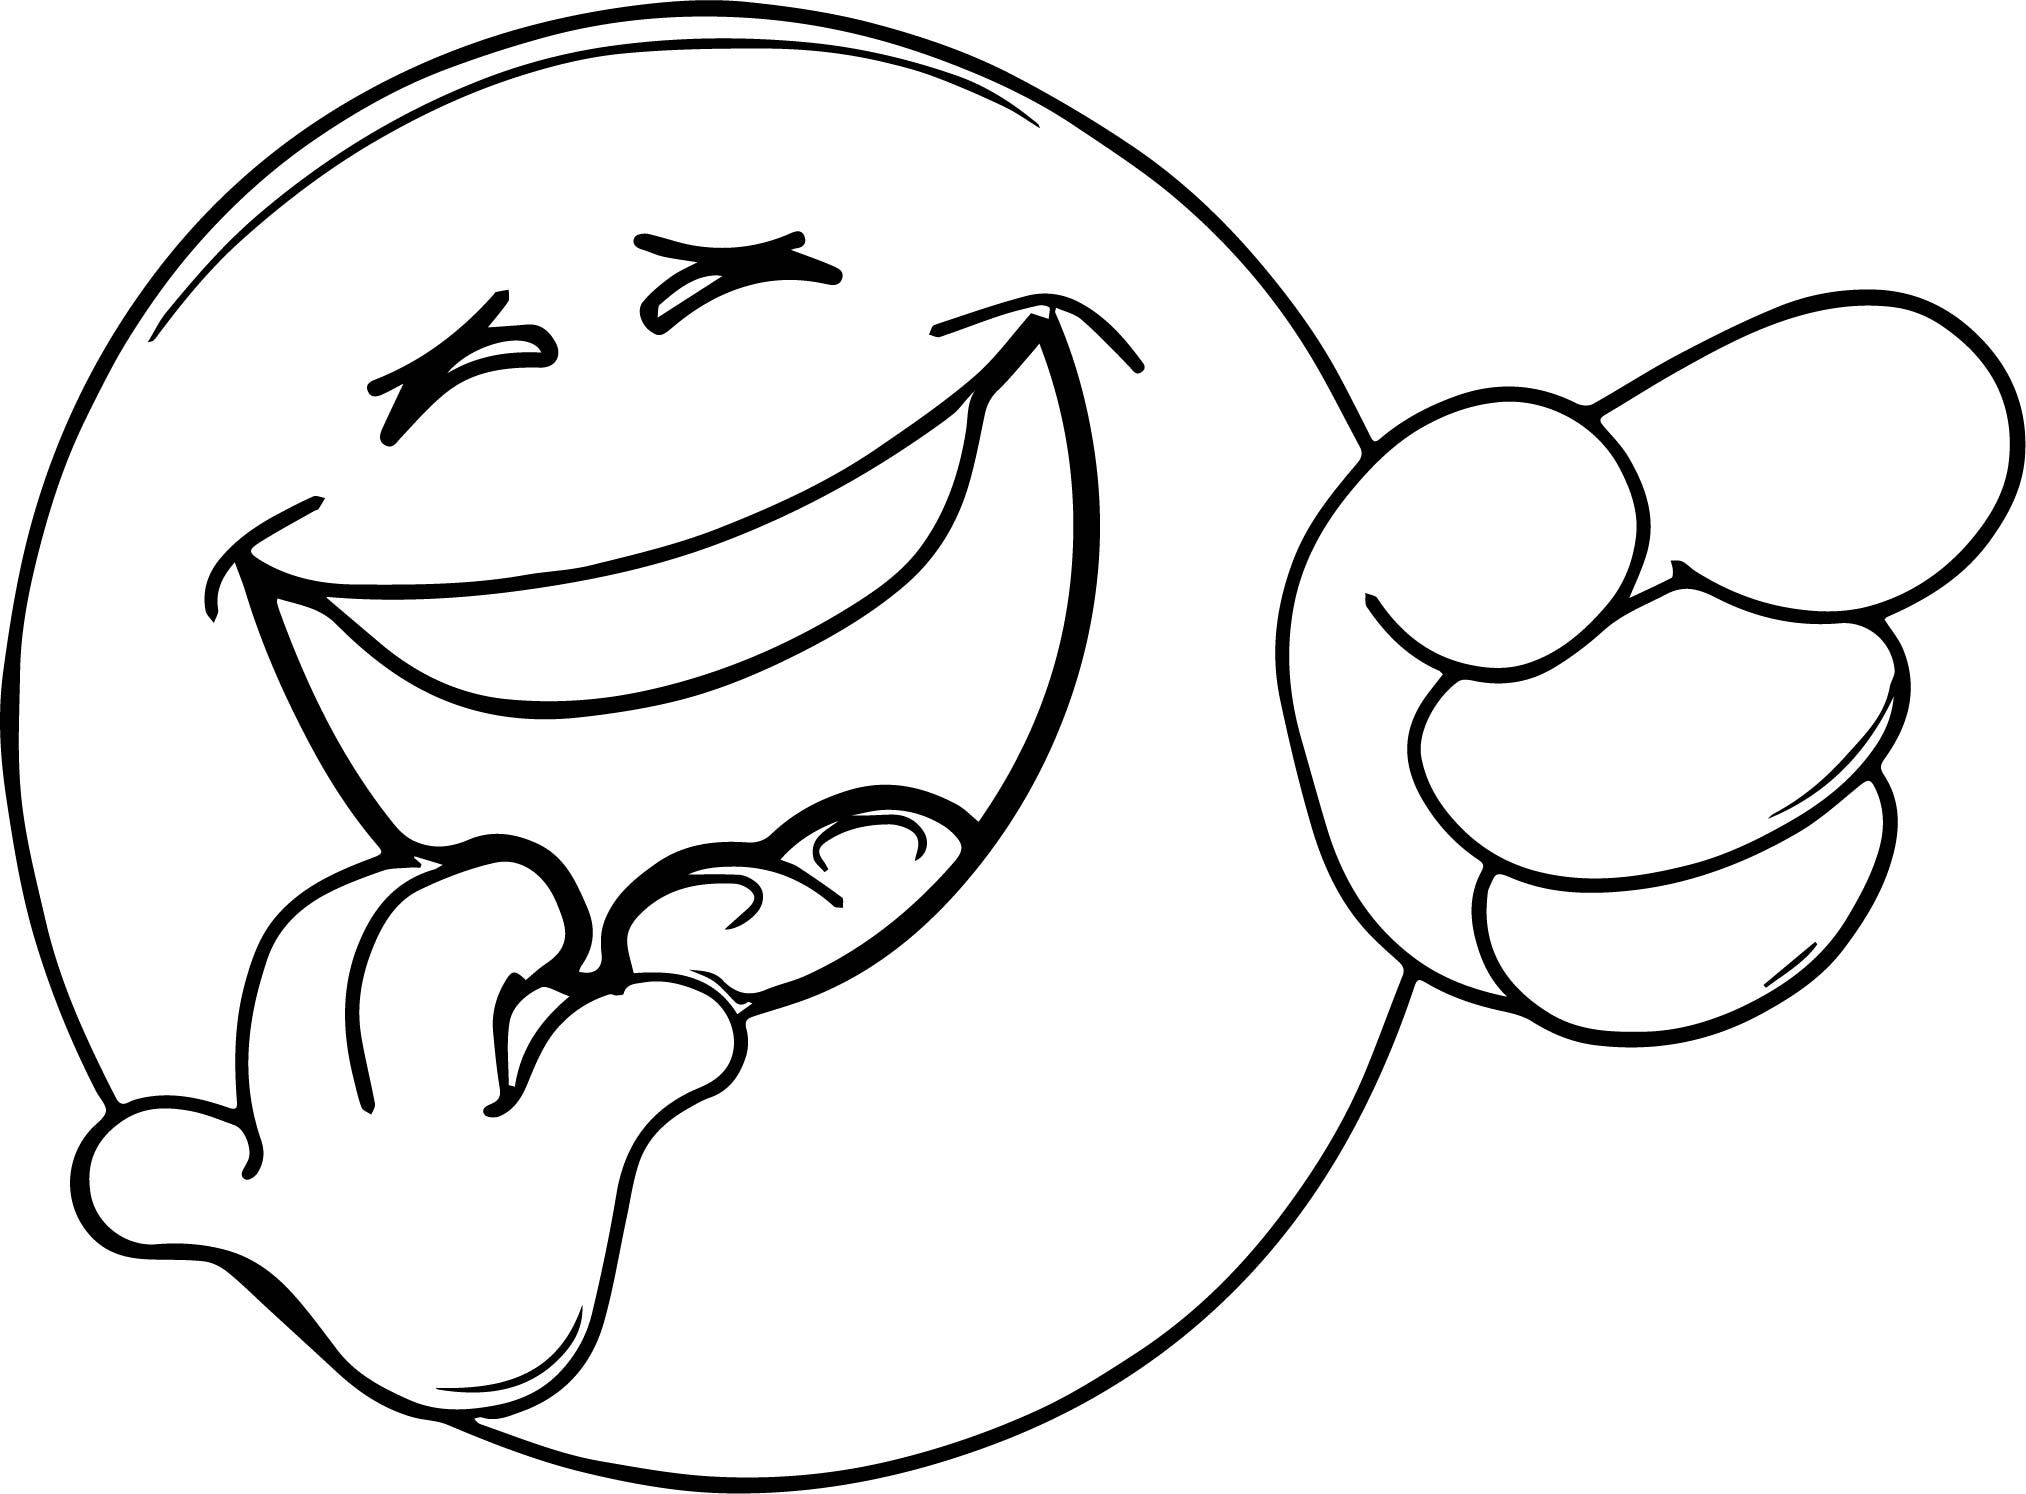 Cool Very Laugh Face Emoticon Coloring Page Coloring Pages For